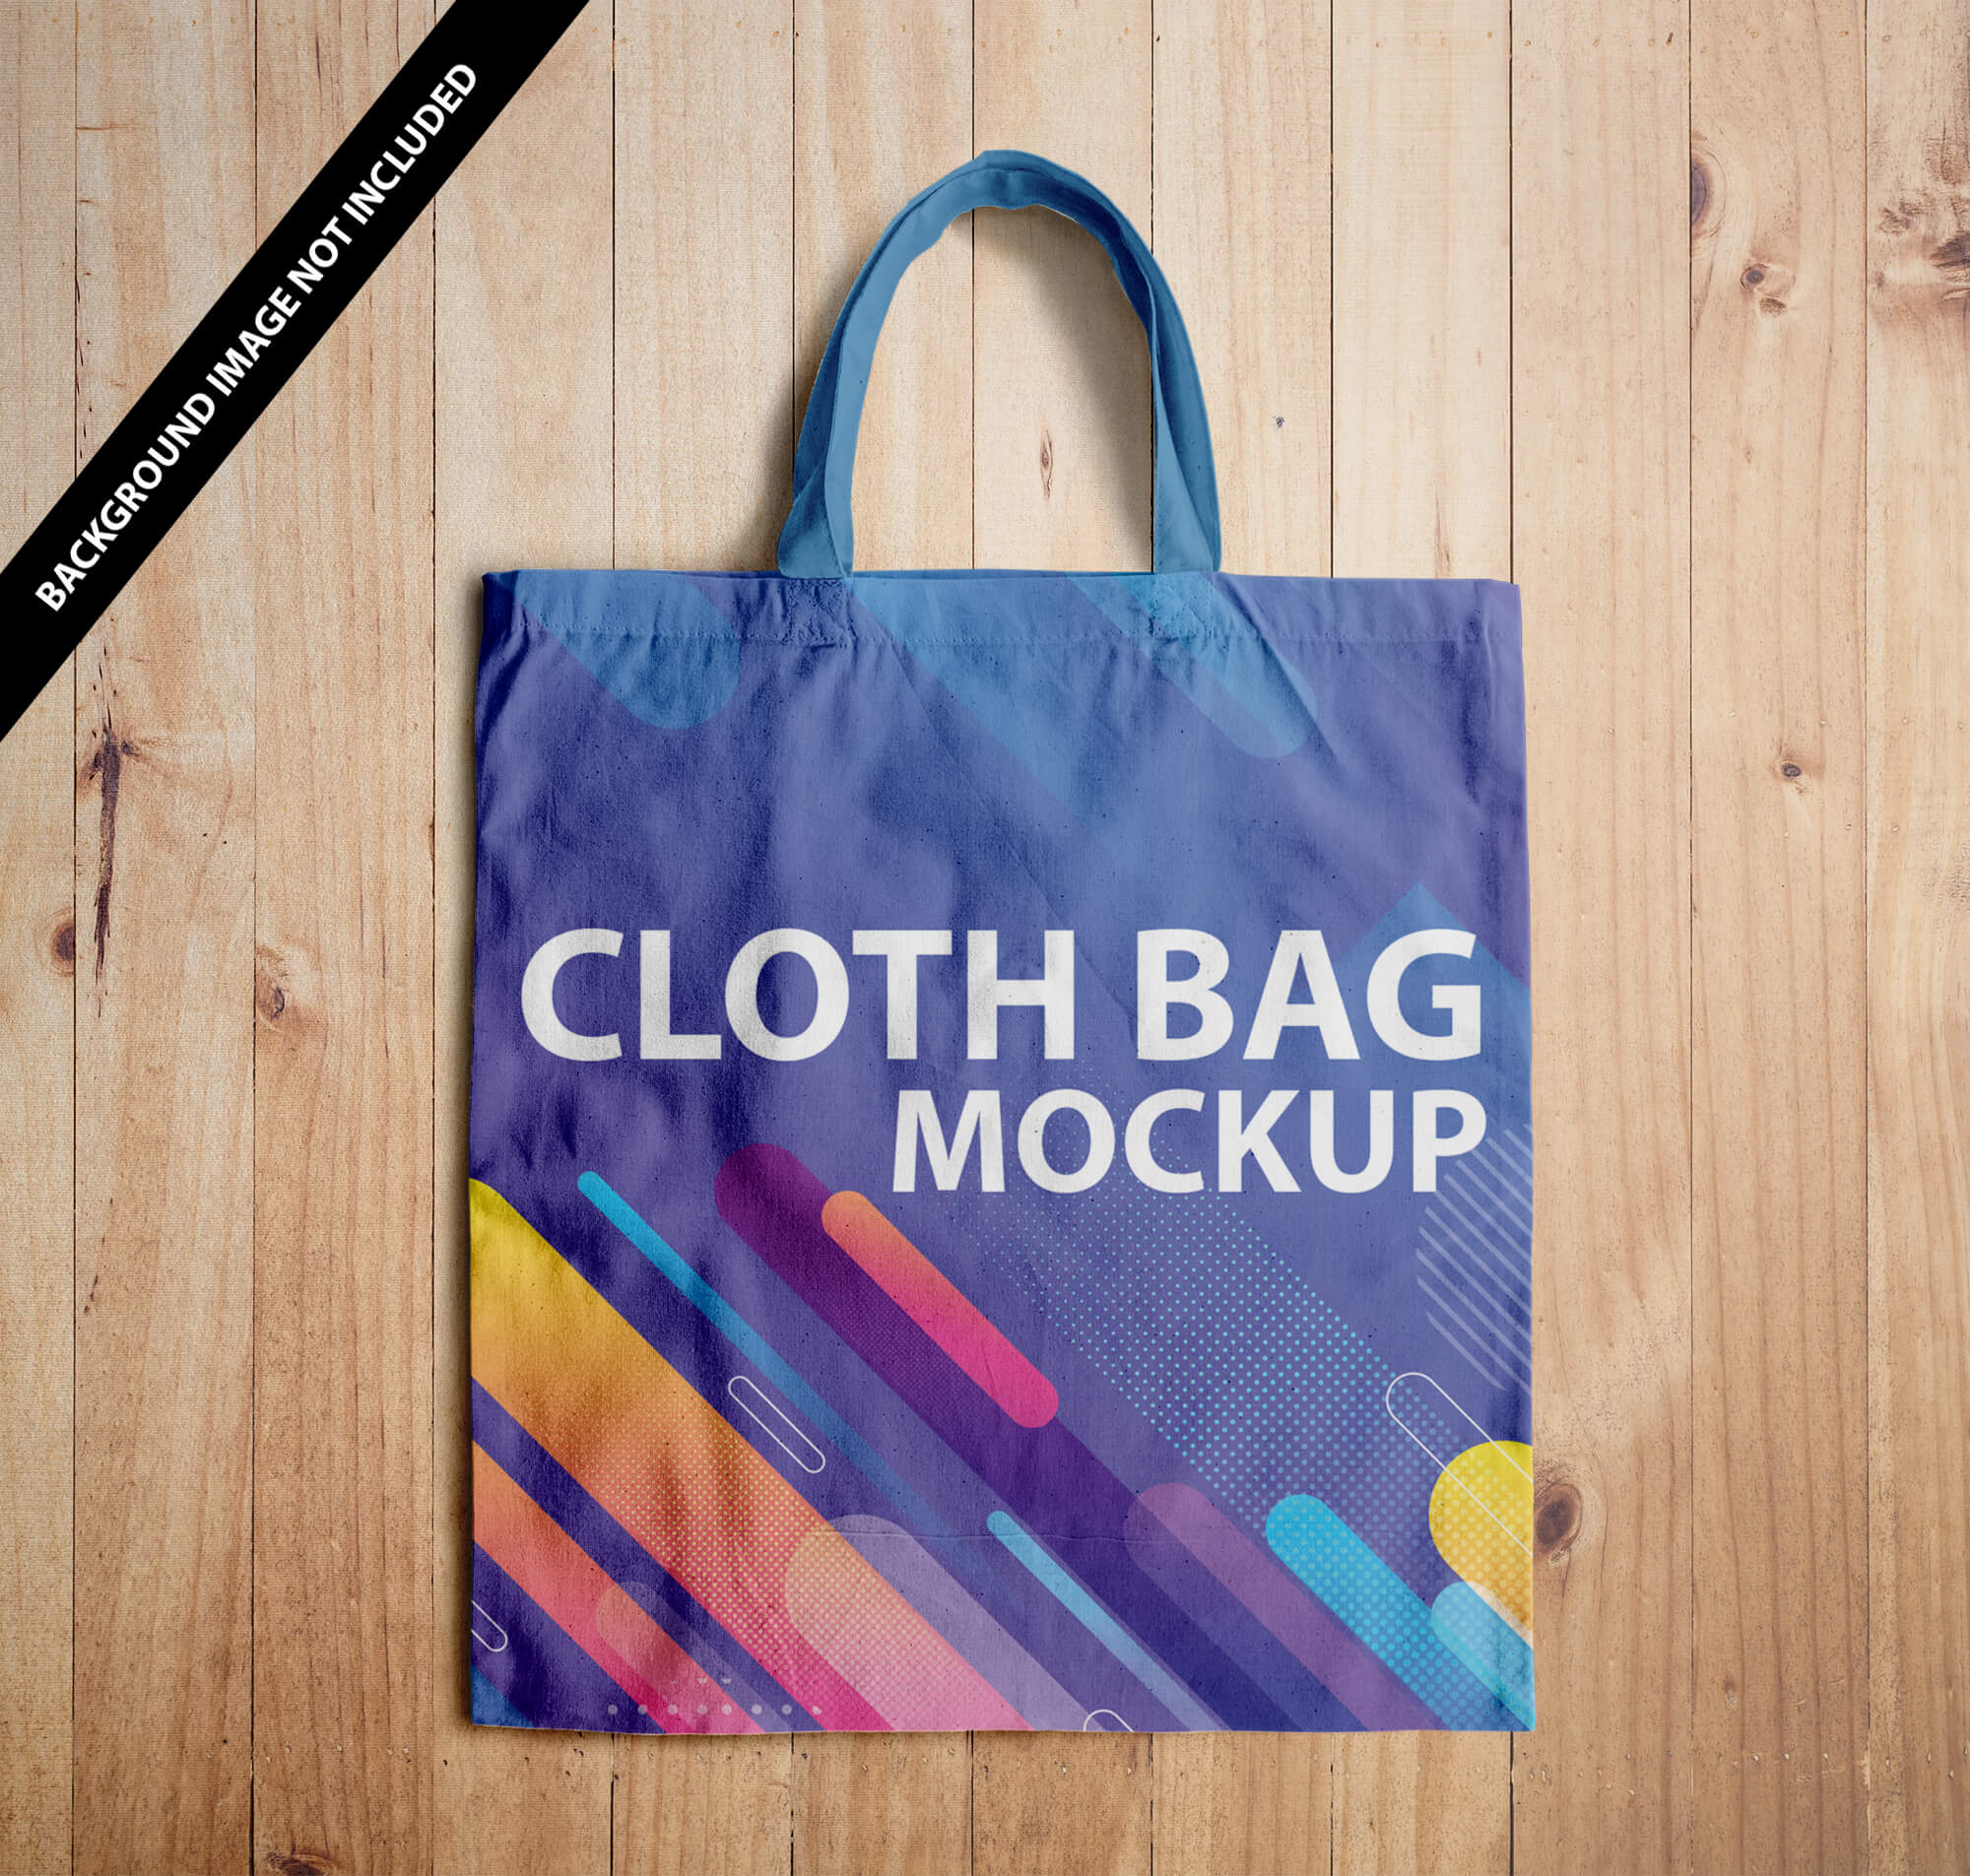 Free Cloth Bag Mockup Vol 2 PSD Template